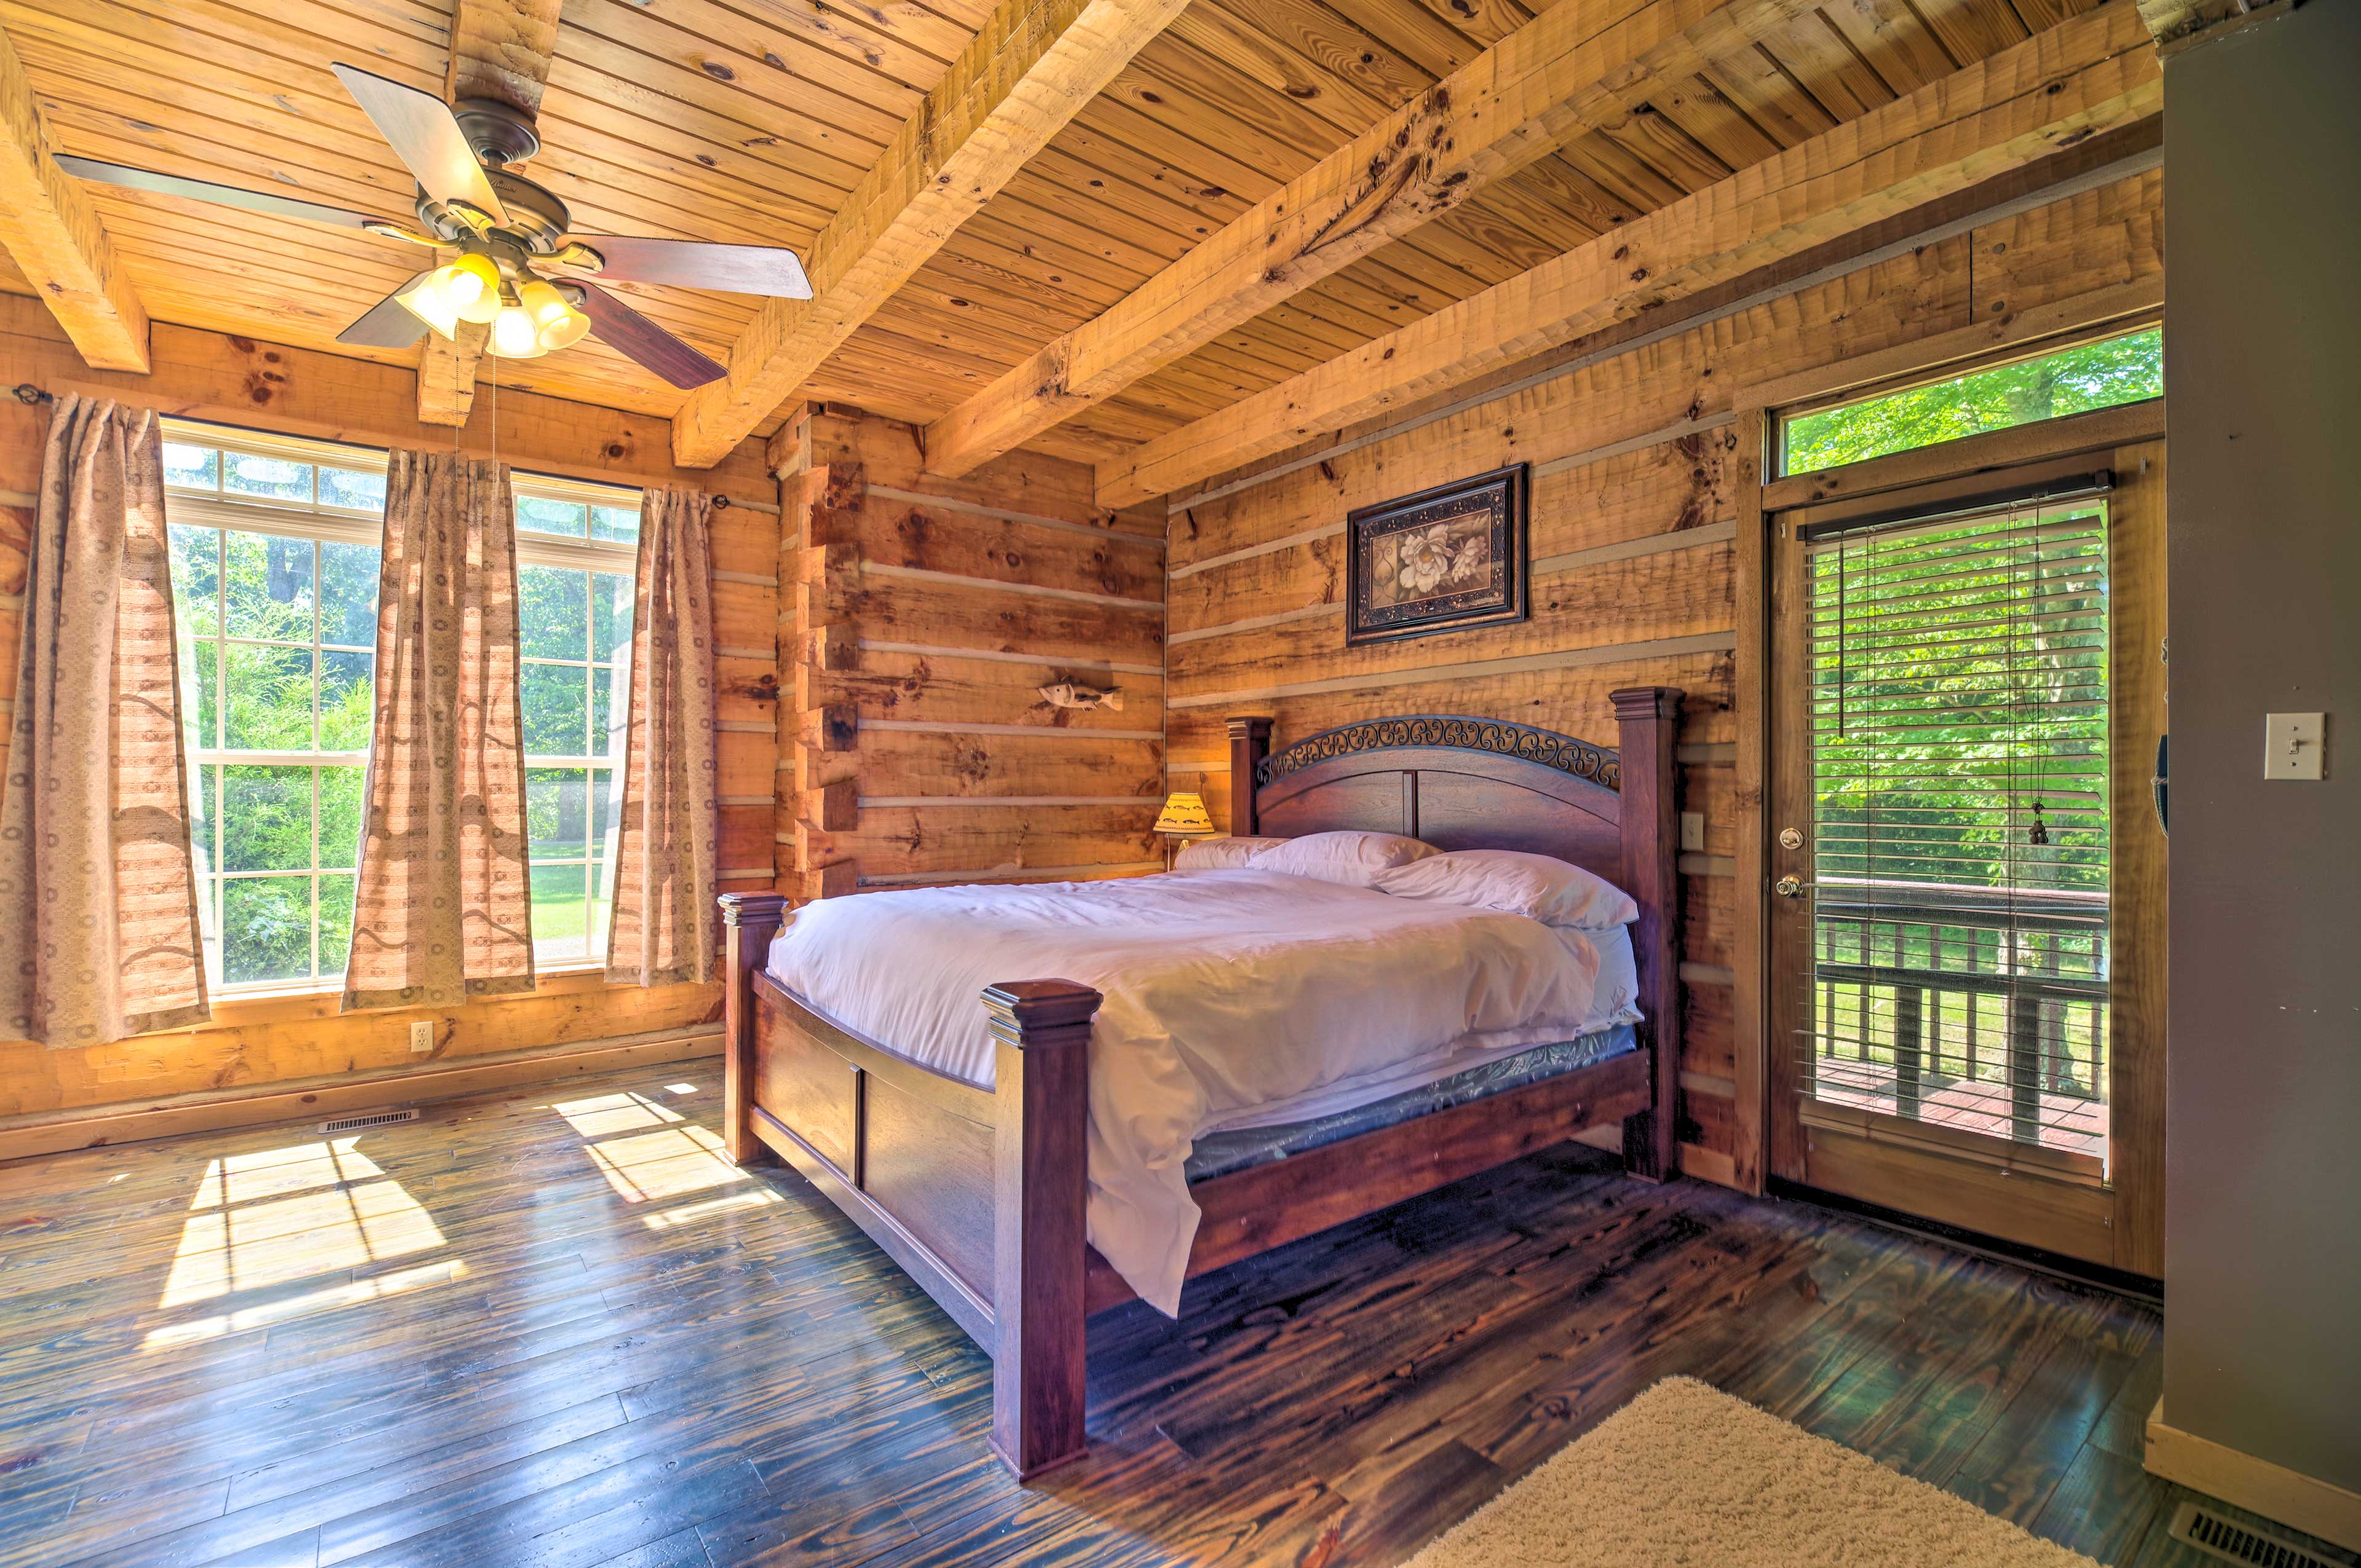 The master bedroom is home to high ceilings and a king bed.